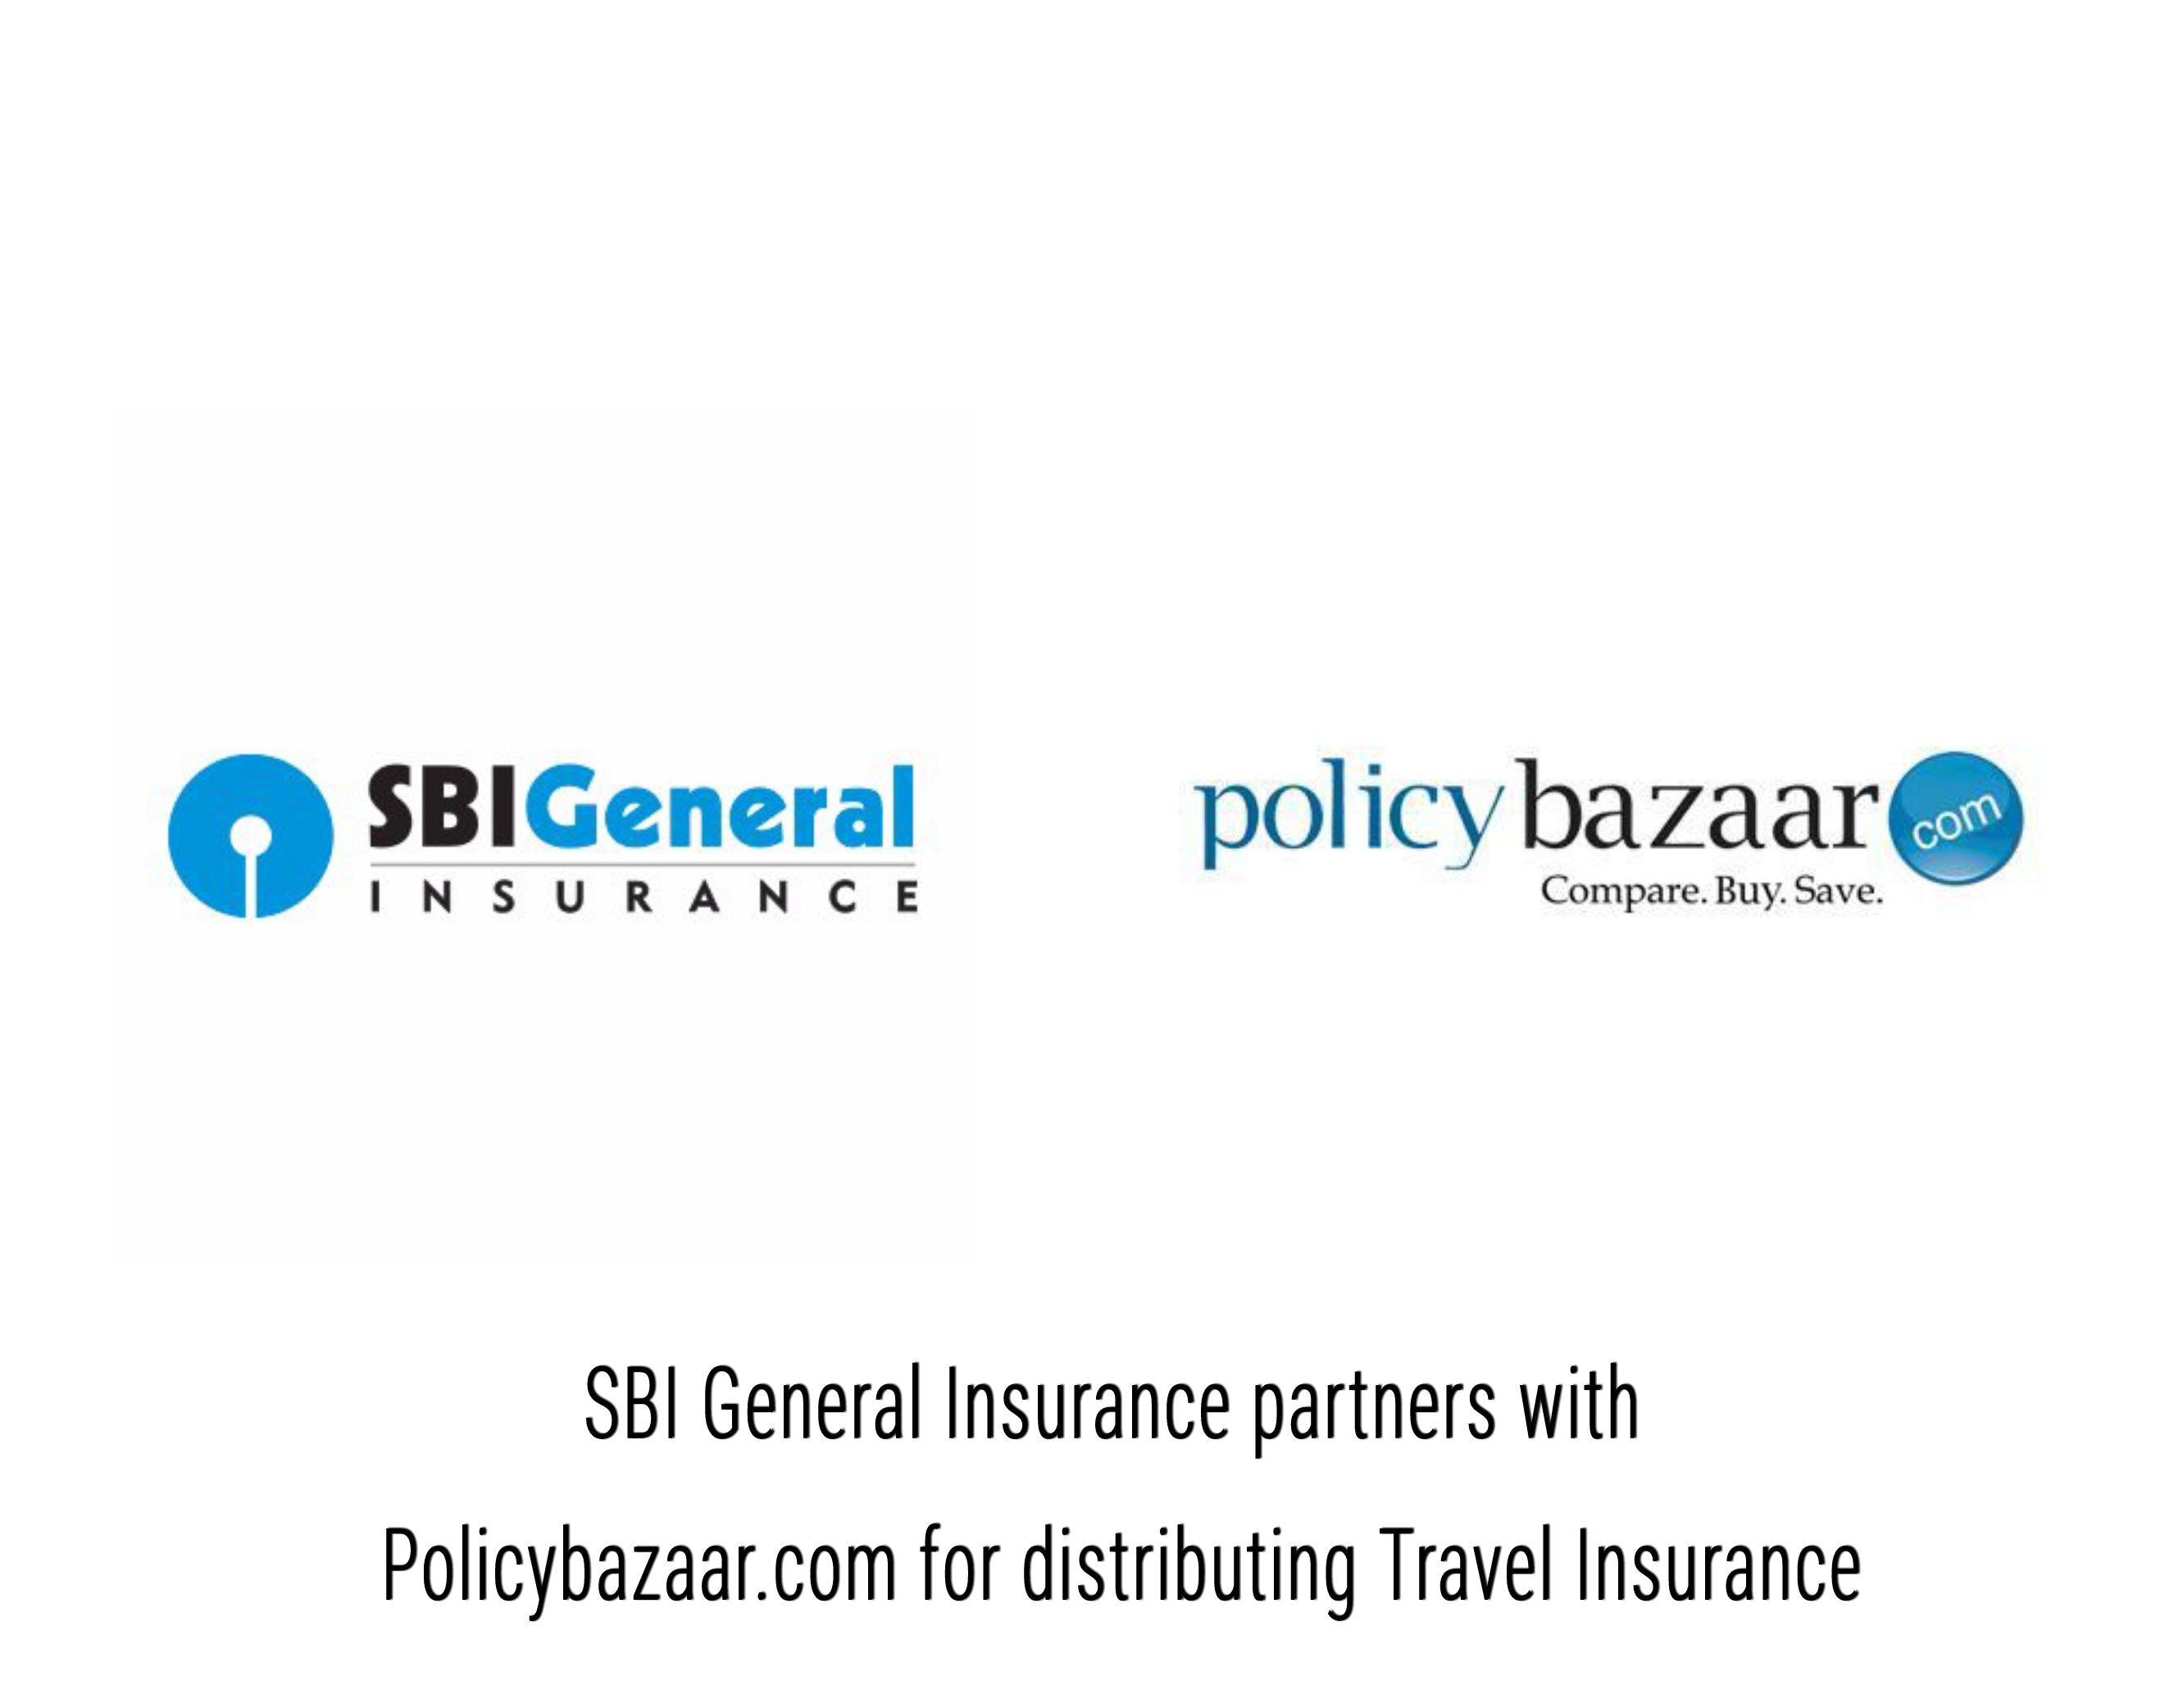 SBI General Insurance partners with Policybazaar.com for distributing Travel Insurance